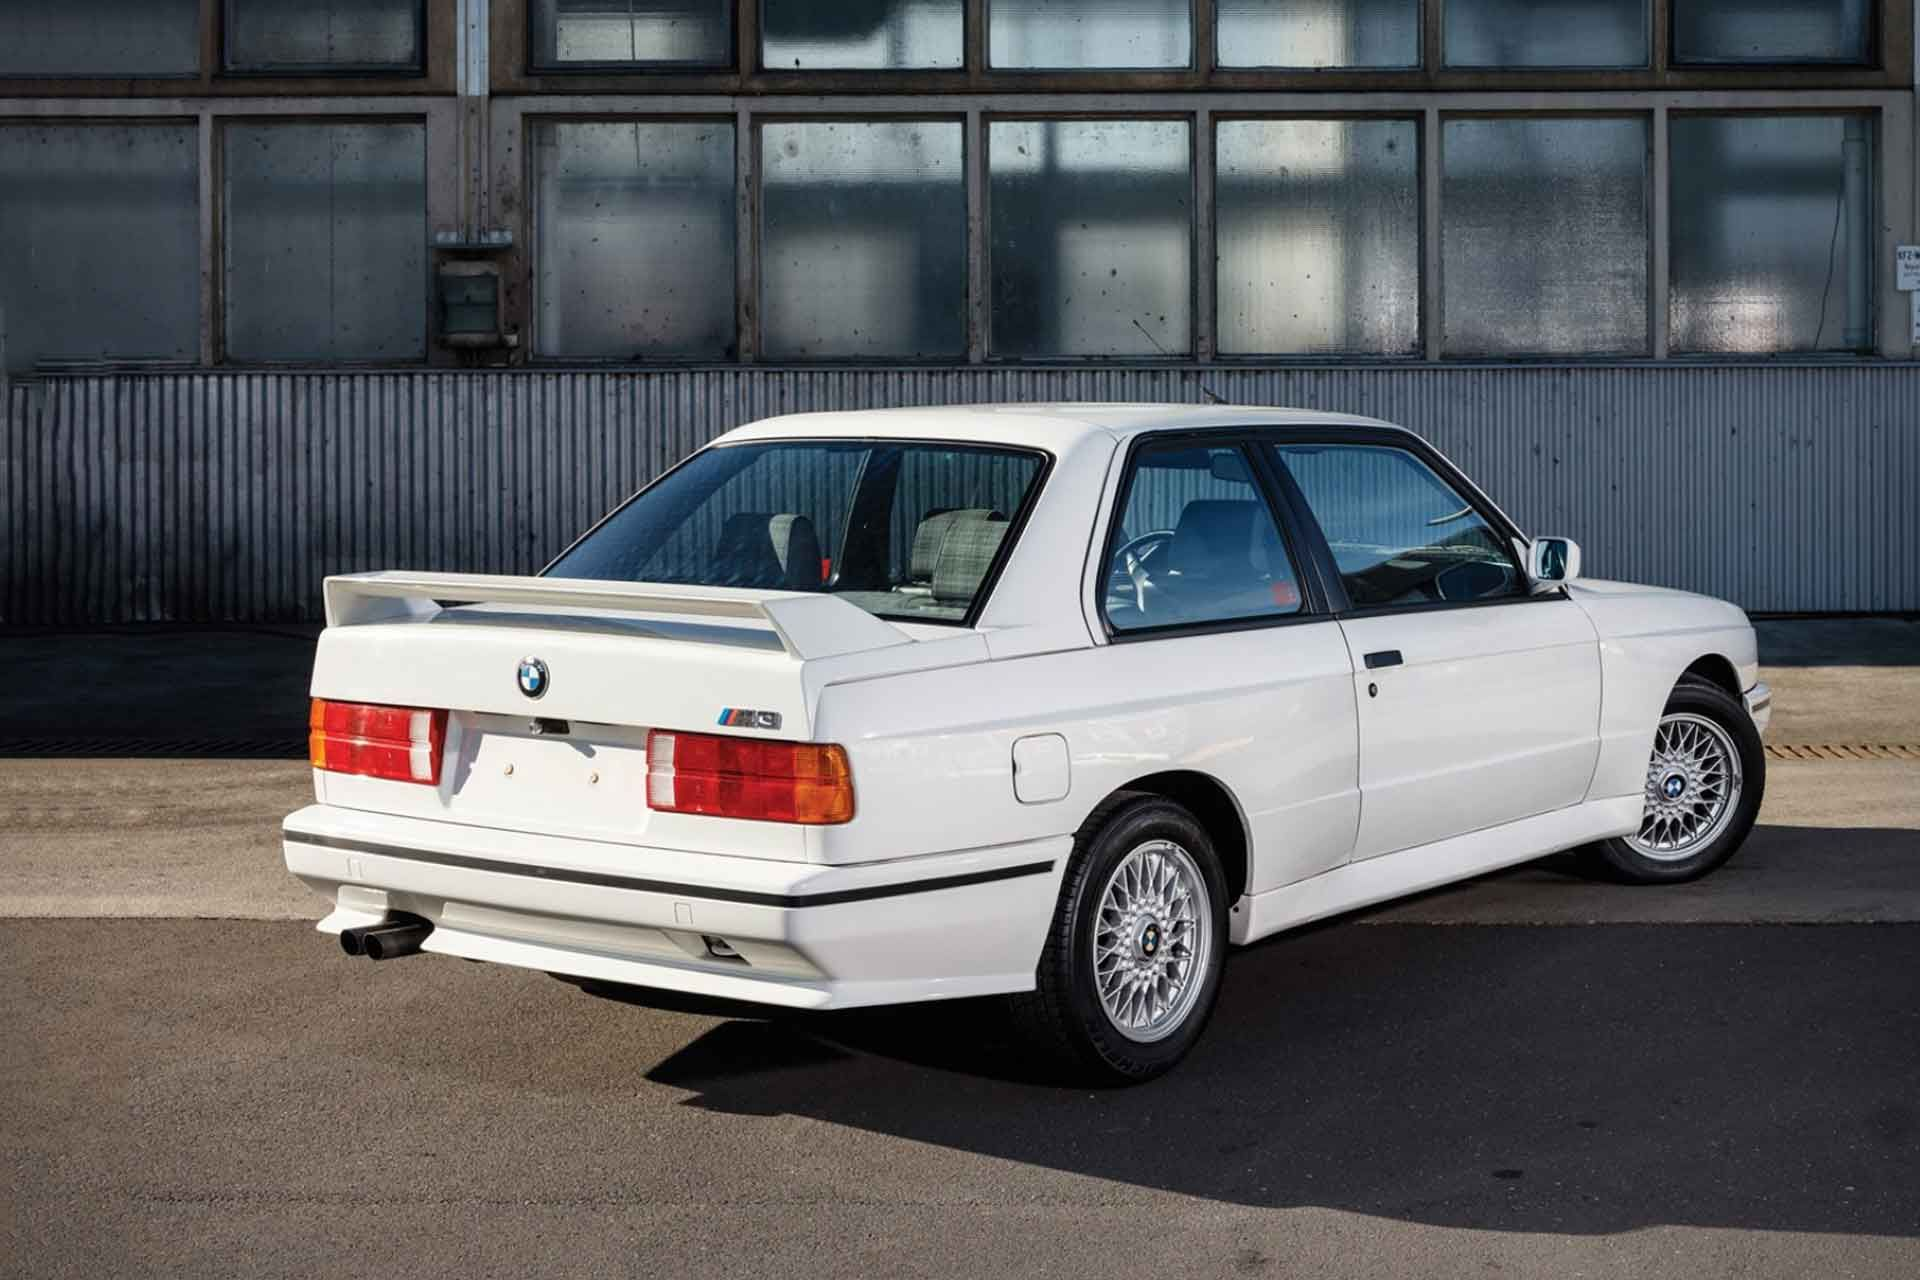 The Bmw M3 Started In 1986 With The Legendary E30 Platform The M3 Used The Same Chassis As The E30 But With A Strengthened Struc Bmw M3 Coupe M3 Coupe Bmw M3